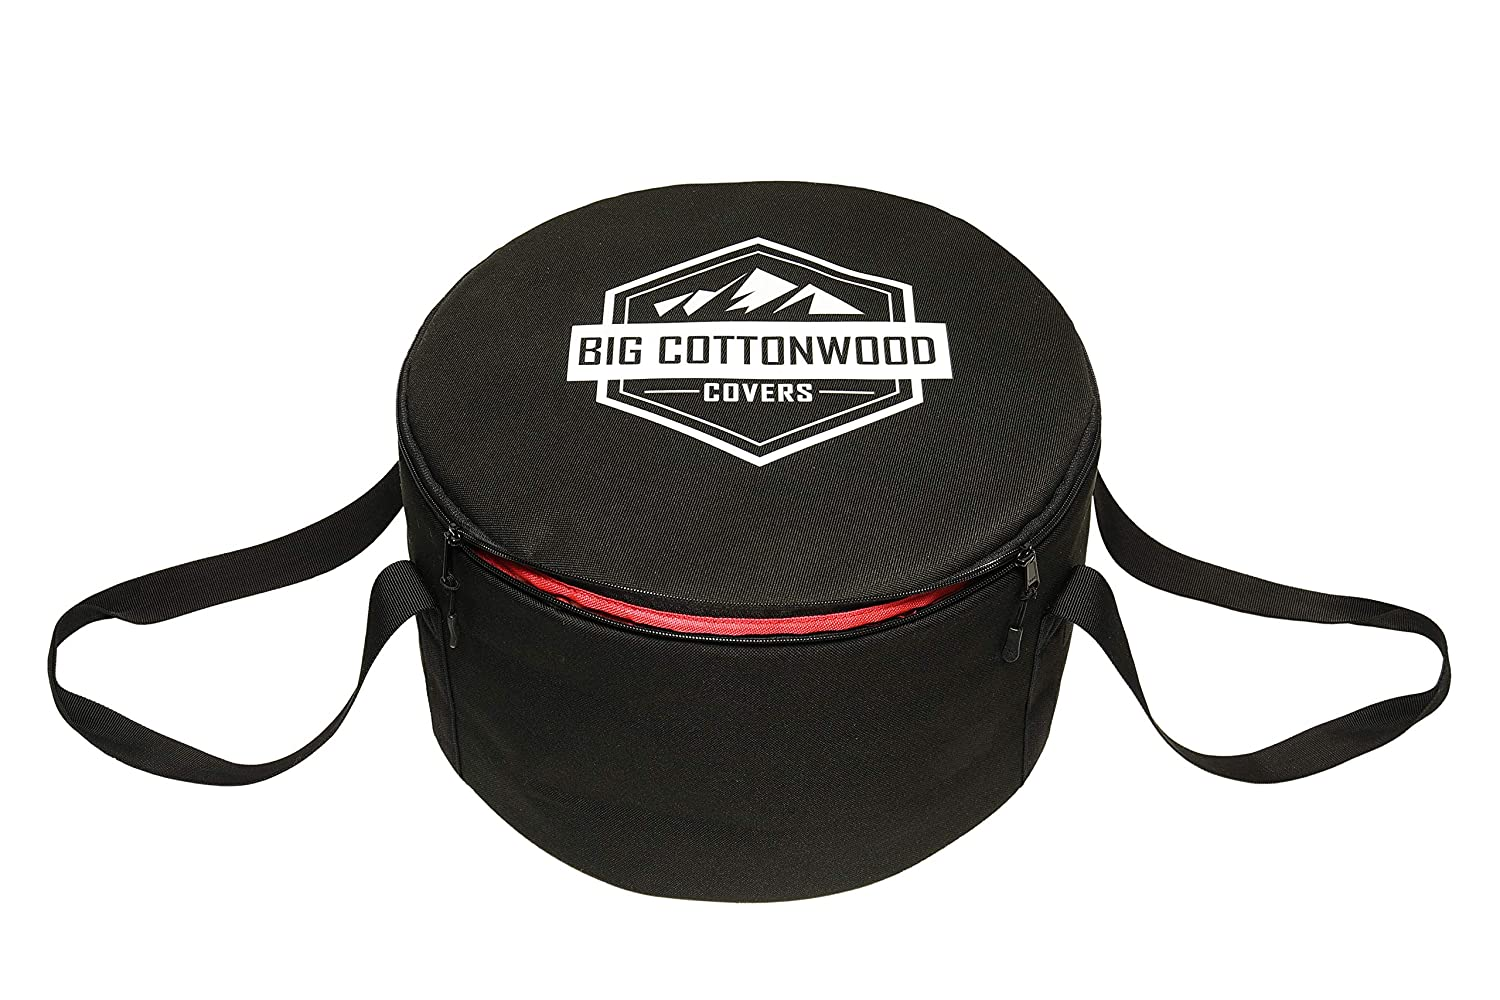 Big Cottonwood Dutch Oven Cover, Bag, case, Tote.